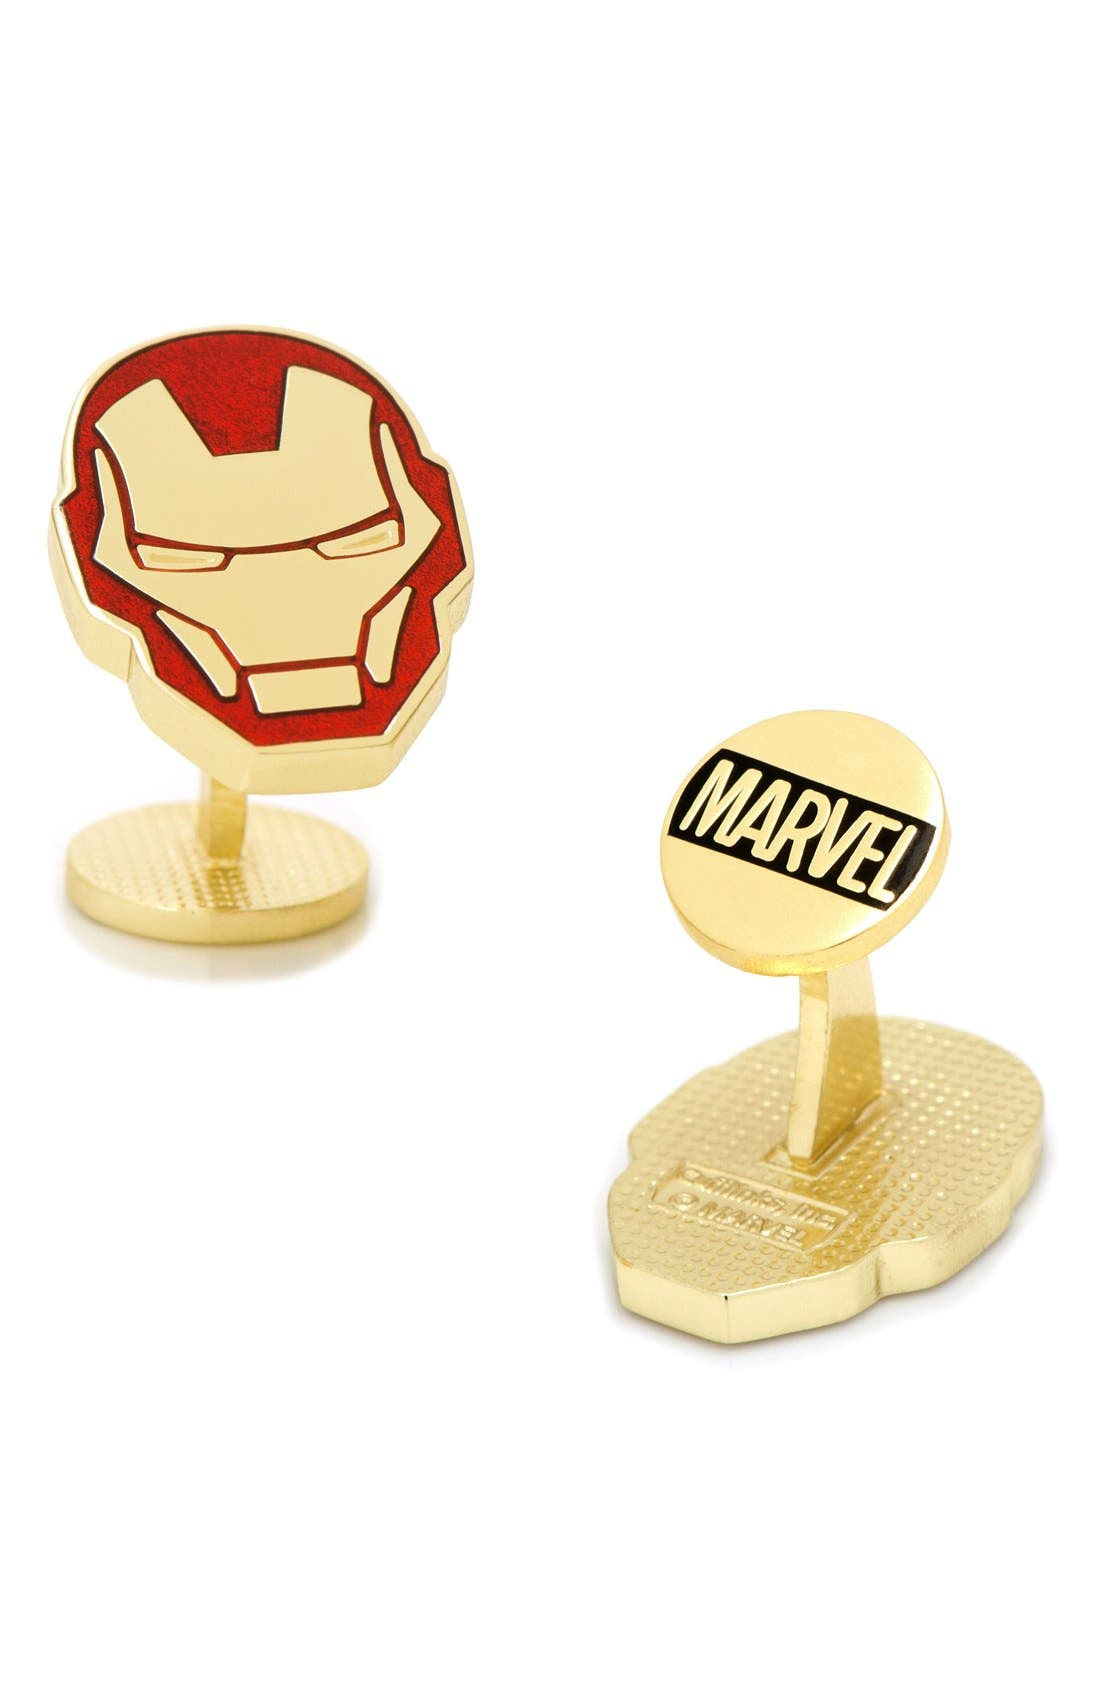 Marvel Iron Man Cuff Links,                             Main thumbnail 1, color,                             RED MULTI